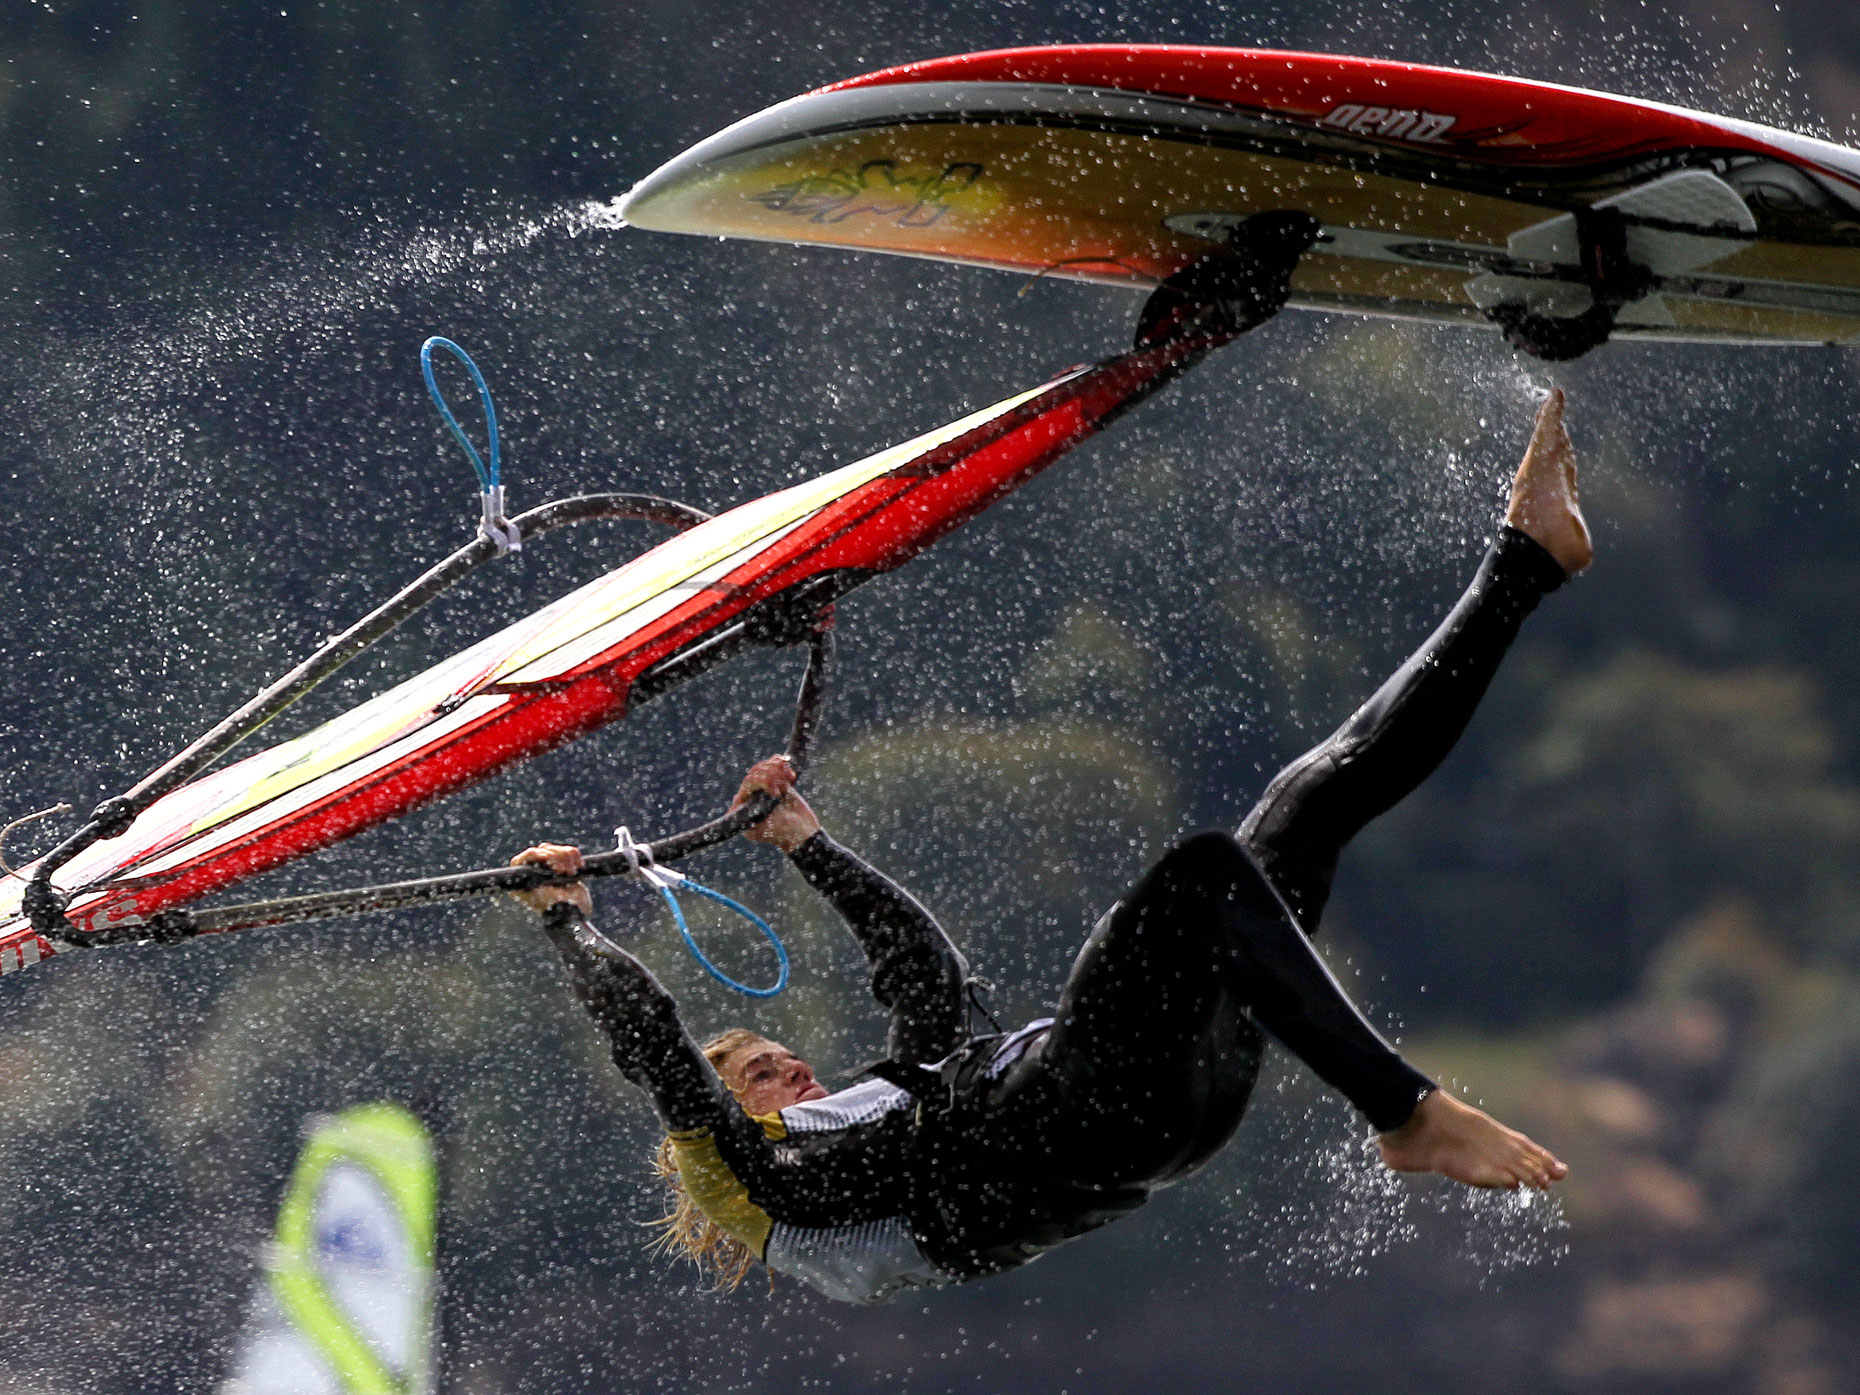 Water drips from the board as a windsurfer catches some air in the Columbia River.